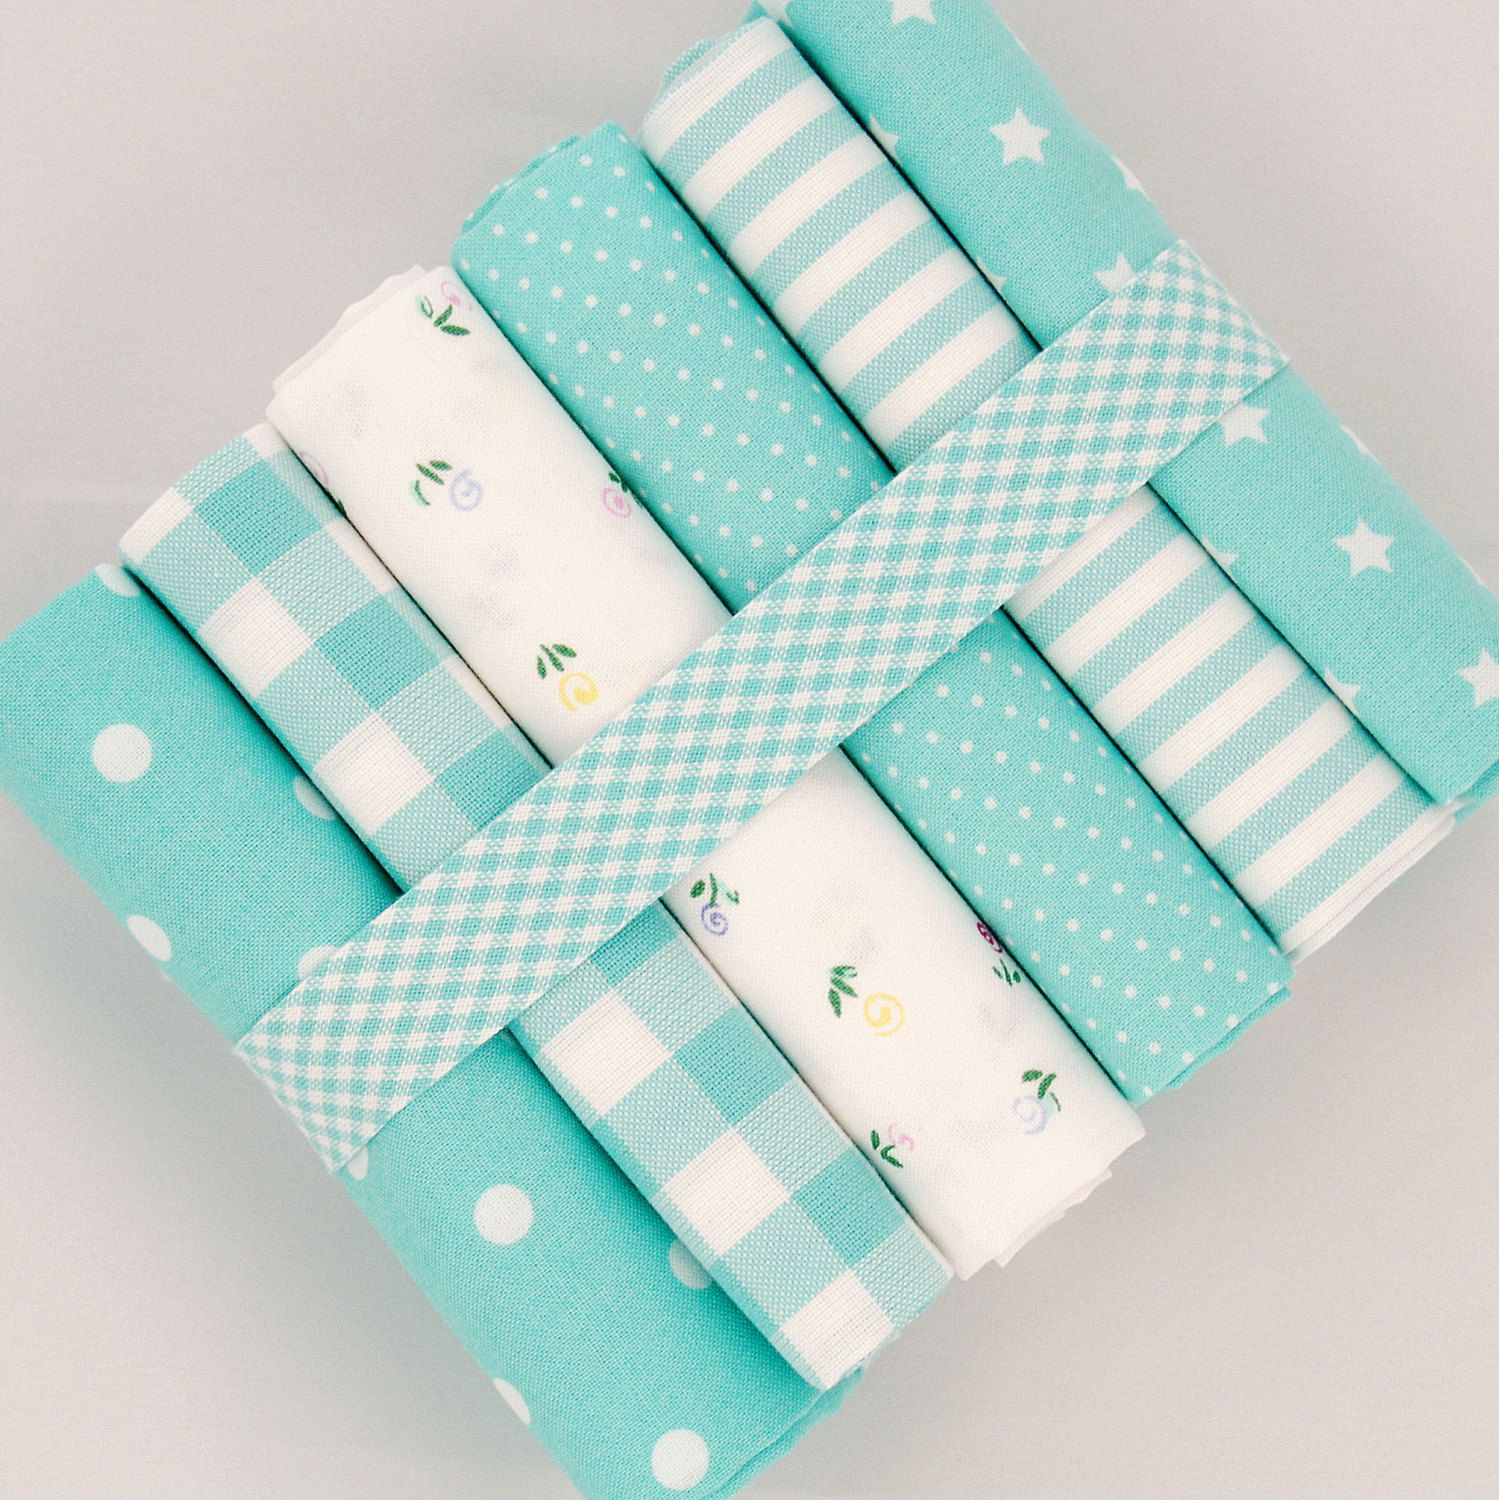 Fat quarter fabric bundle turquoise on white - 100% cotton stripes, checks, floral - quilt patchwork doll toy cushion bunting by fabricsandfrills on Etsy https://www.etsy.com/ca/listing/205627210/fat-quarter-fabric-bundle-turquoise-on